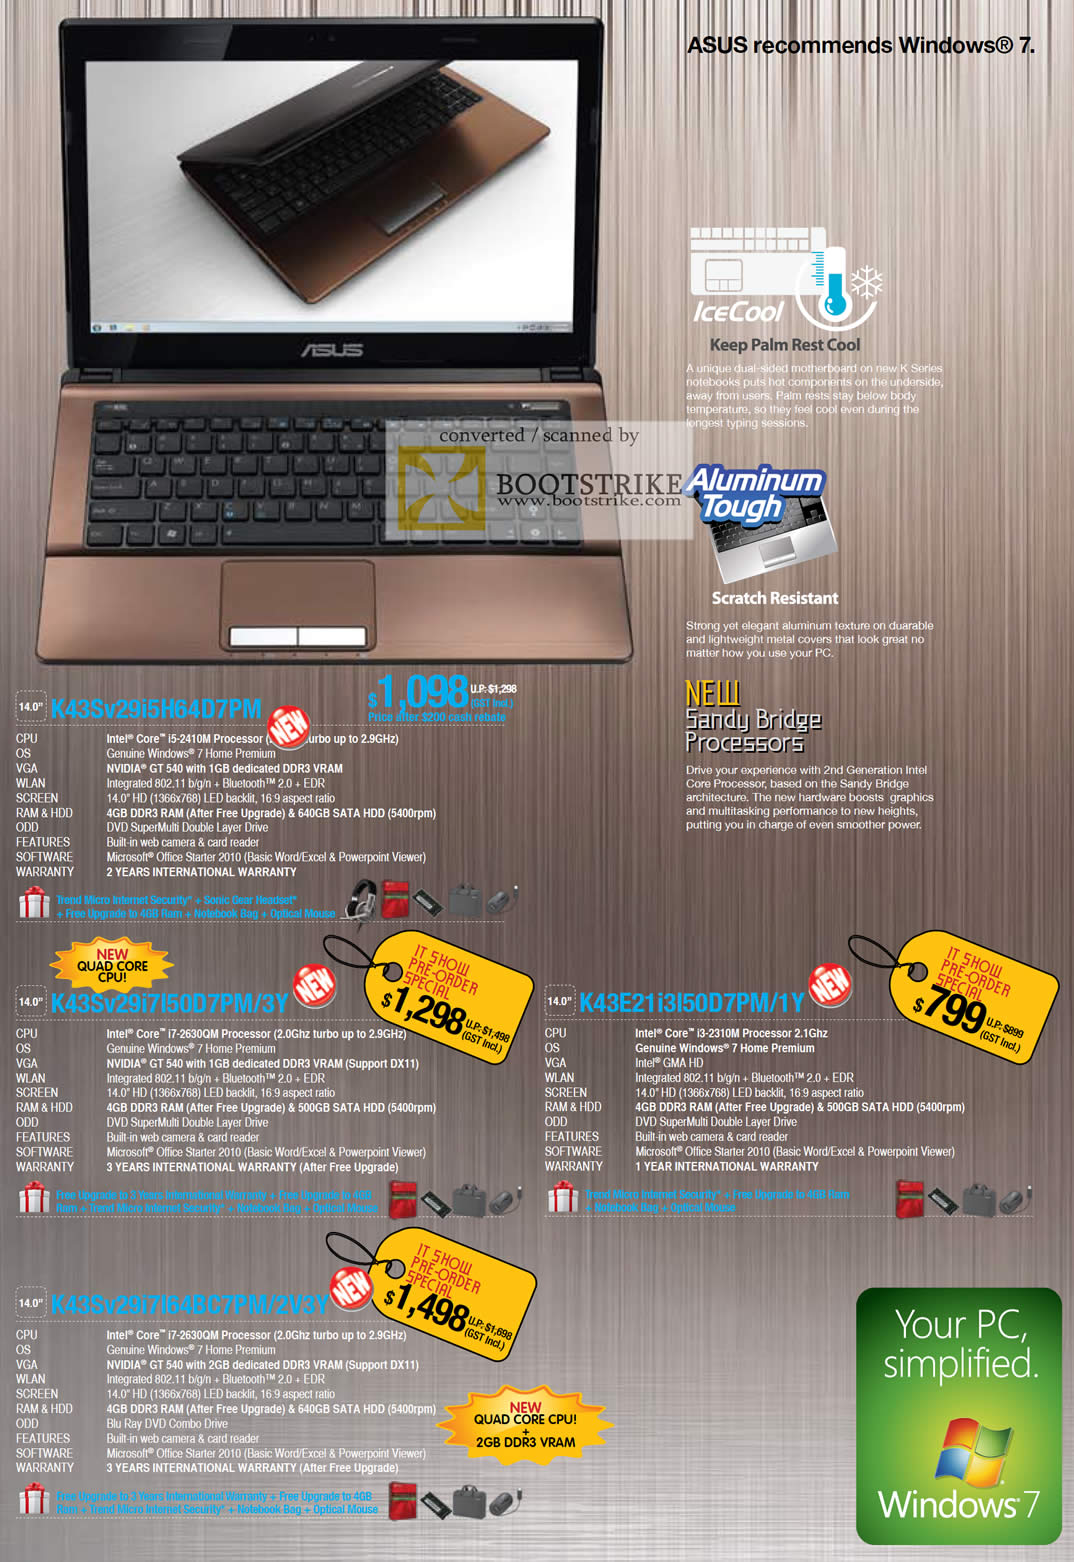 IT Show 2011 price list image brochure of ASUS Notebooks K43S V29i5H64D7PM V29I7150D7PM 3Y K43E 21I3L50D7PM 1Y V29I7L64BC7PM 2V3Y